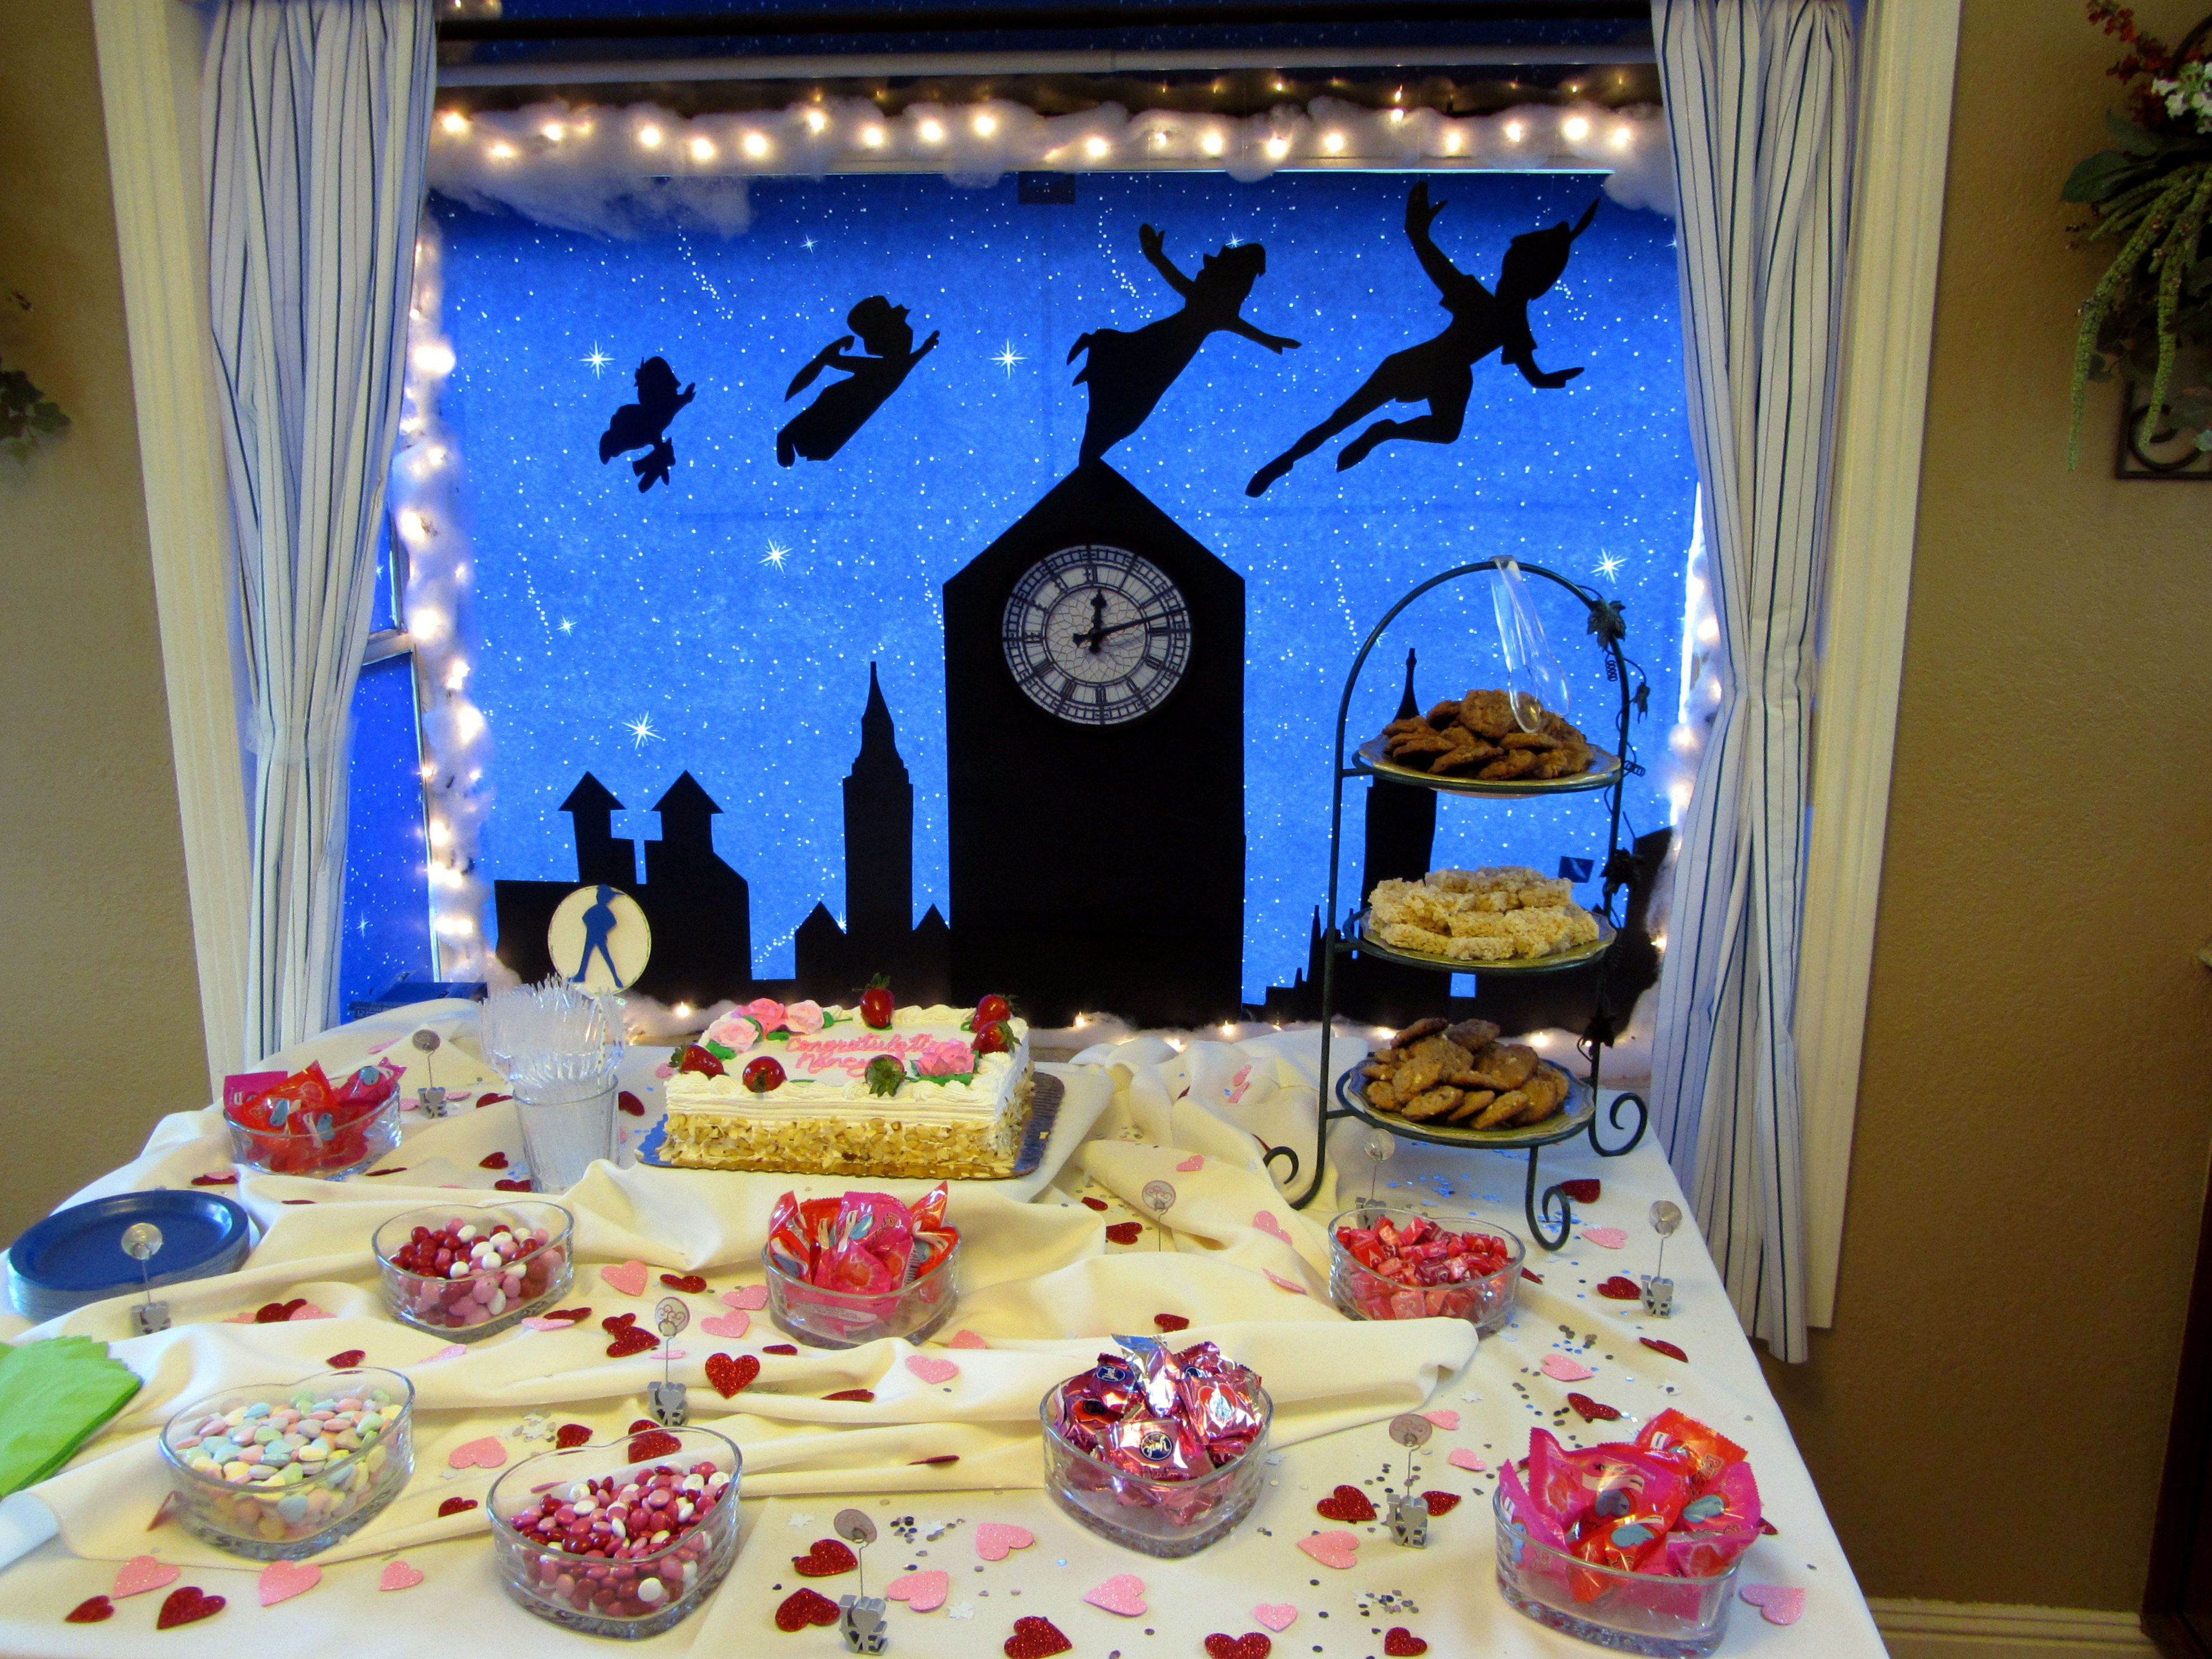 Peter Pan Bridal Shower Decorations Silhouettes And Dessert Table Peter Pan Party Party Decorations Peter Pan Party Supplies